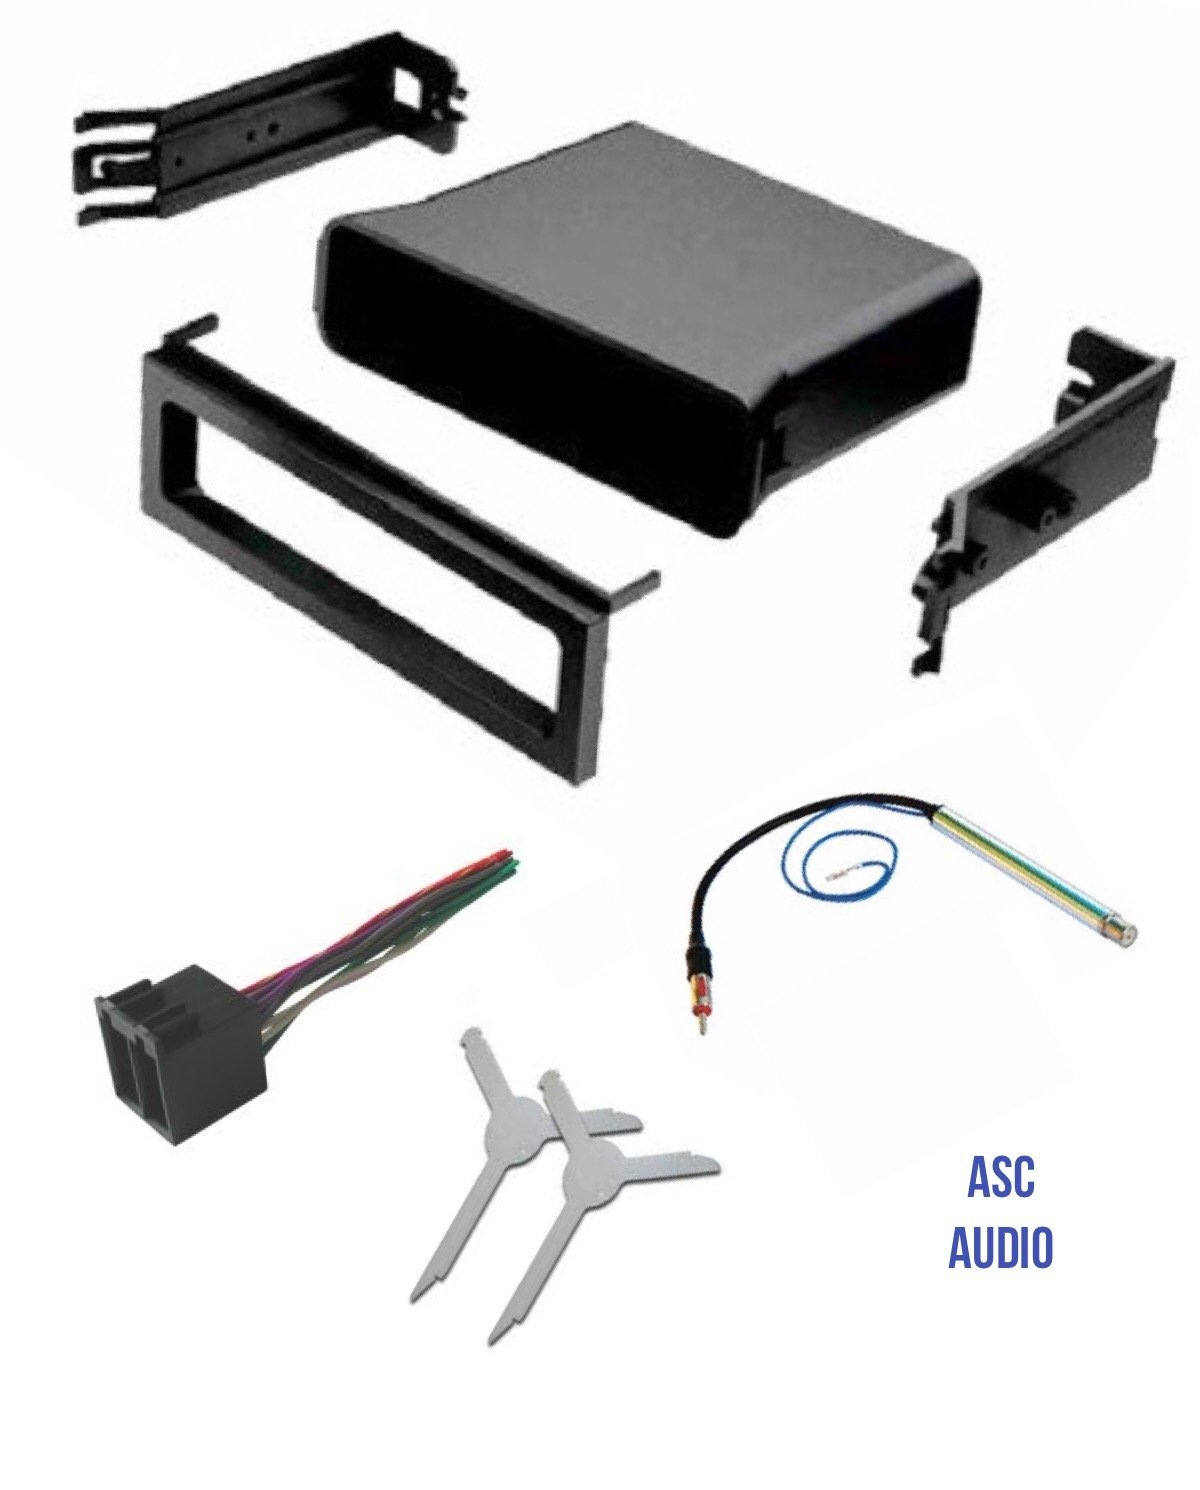 hight resolution of get quotations asc audio car stereo dash pocket kit wire harness antenna adapter and radio